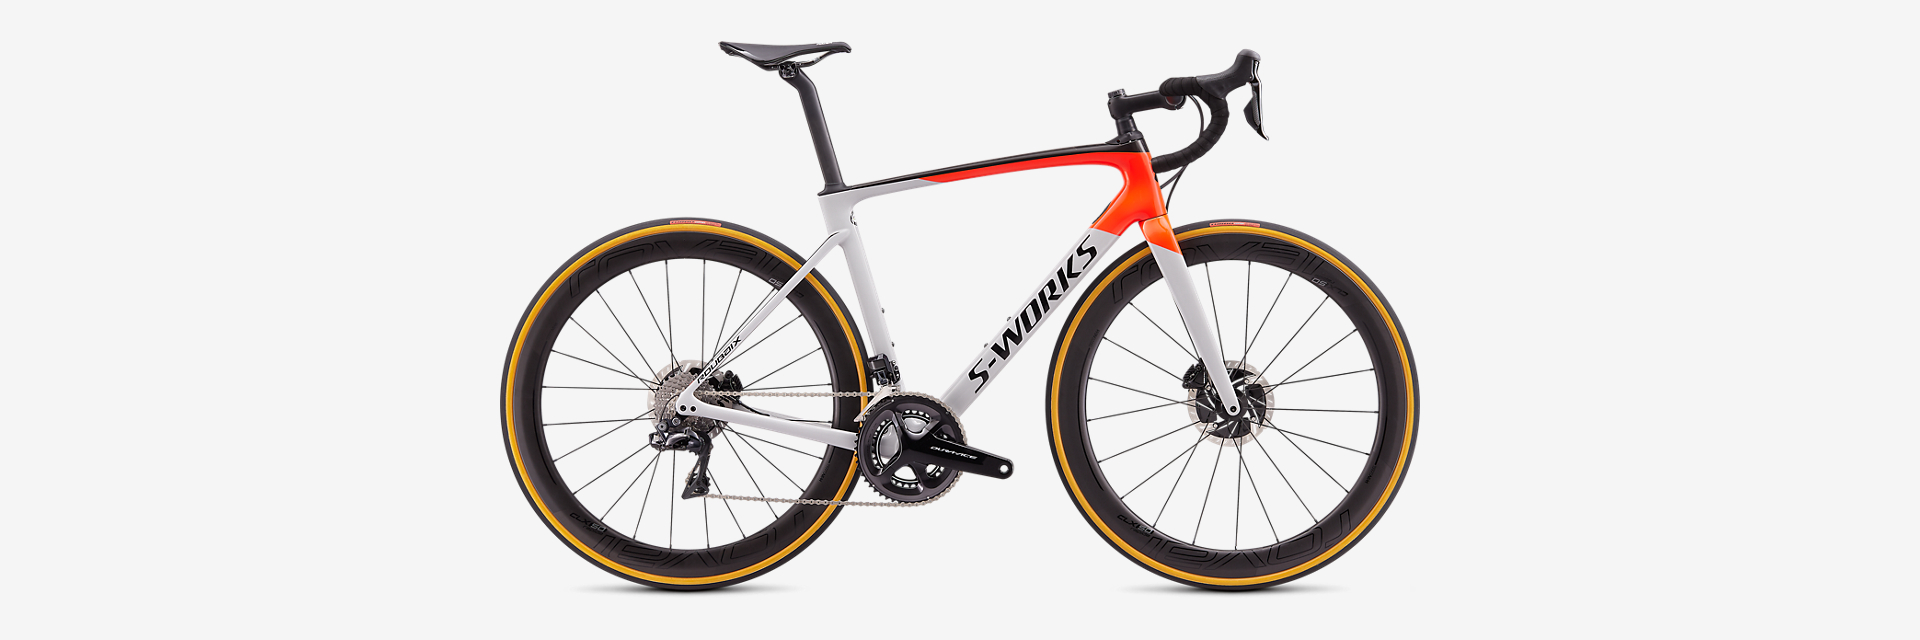 SPECIALIZED S-Works Roubaix Shimano Dura Ace Di2